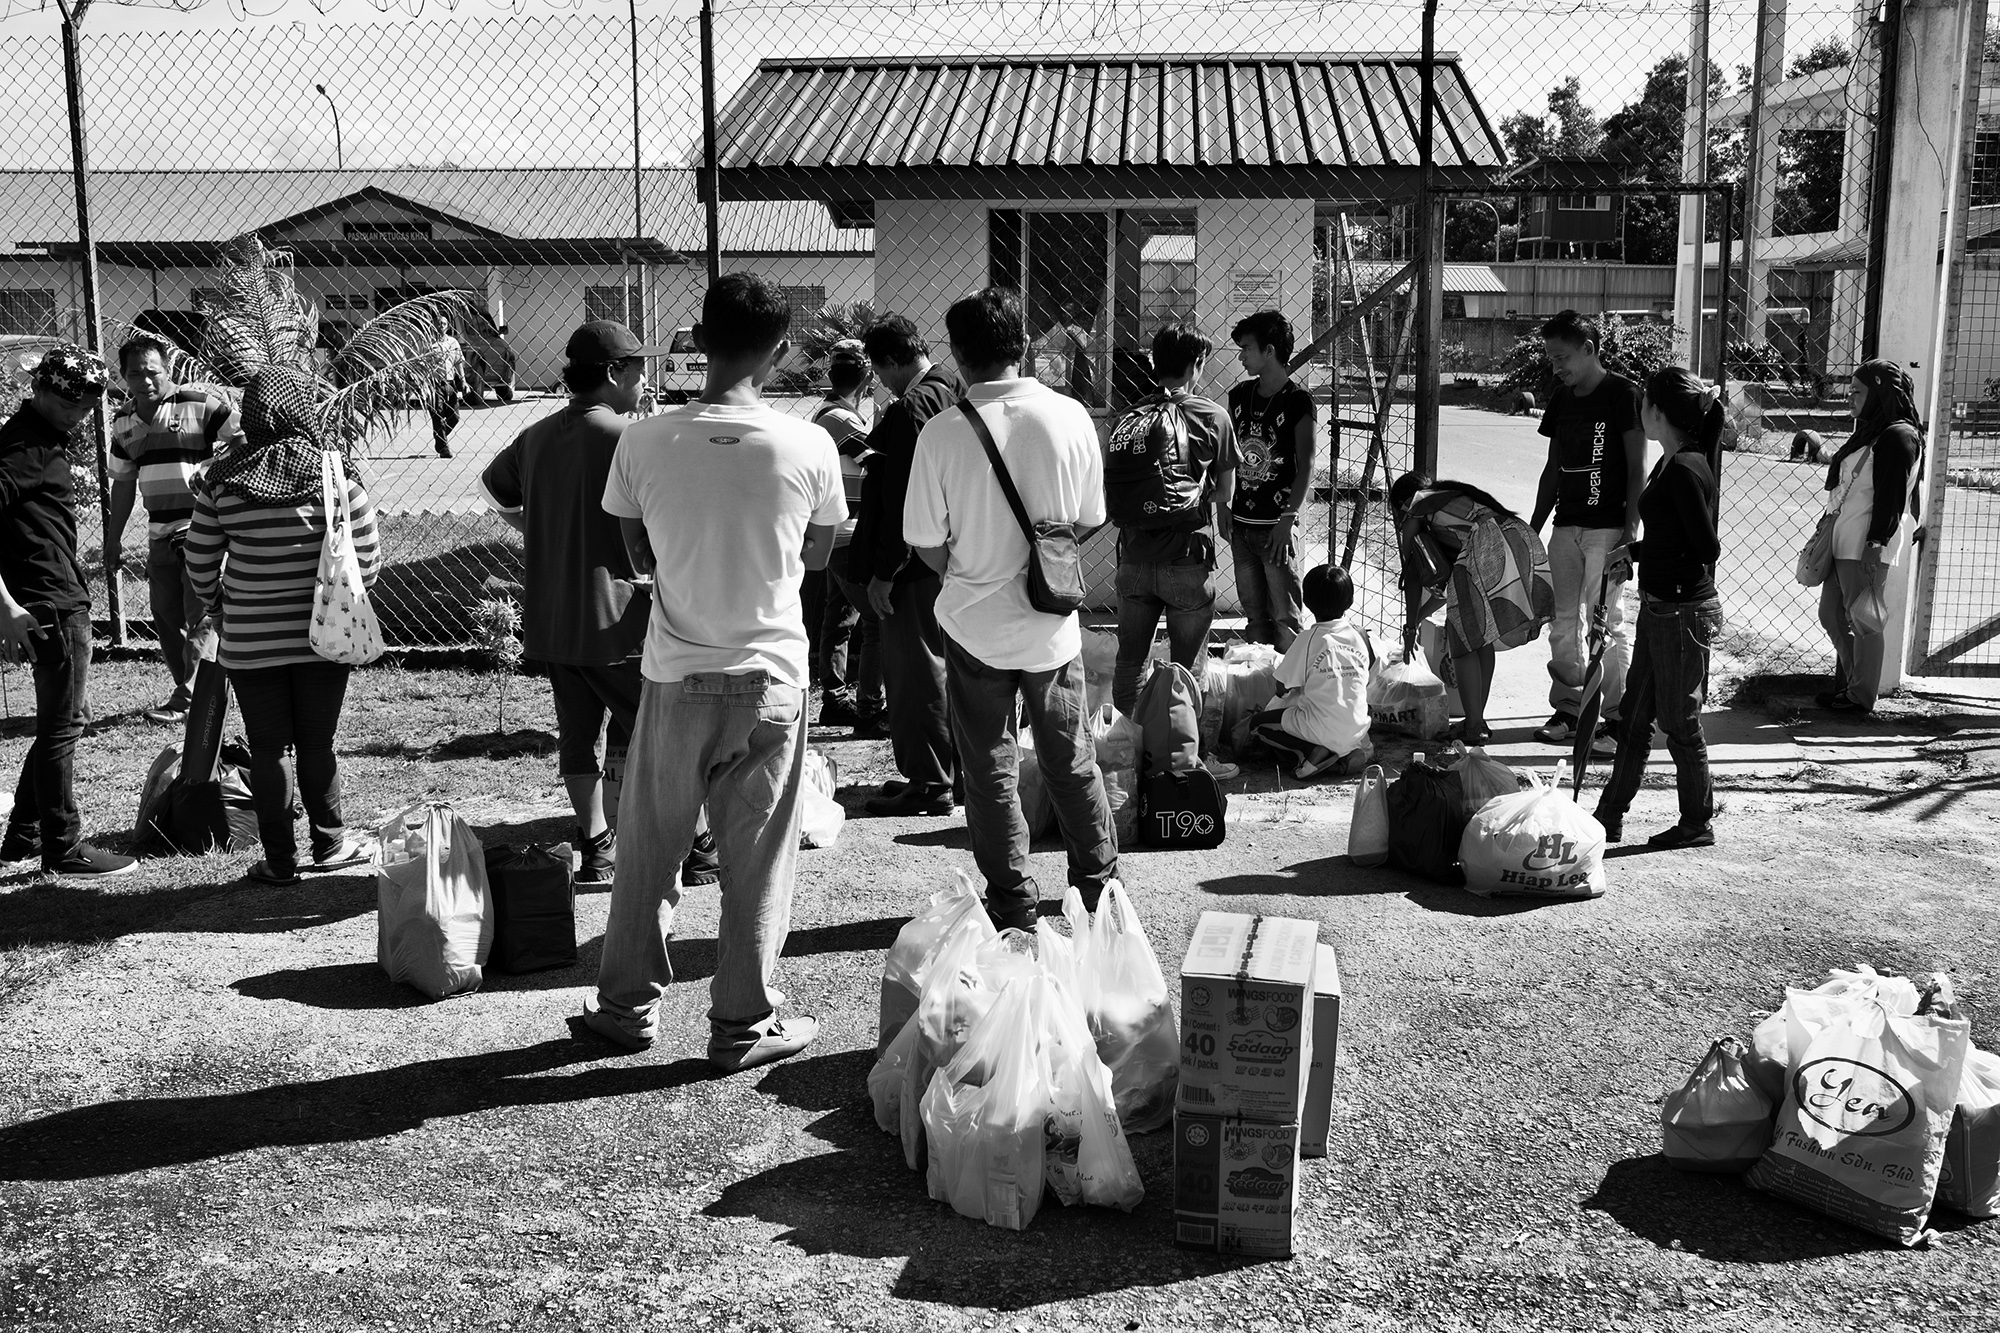 Families bring simple food, toiletries and other essentials to family members in Kimanis Detention Camp in Paper, Sabah.